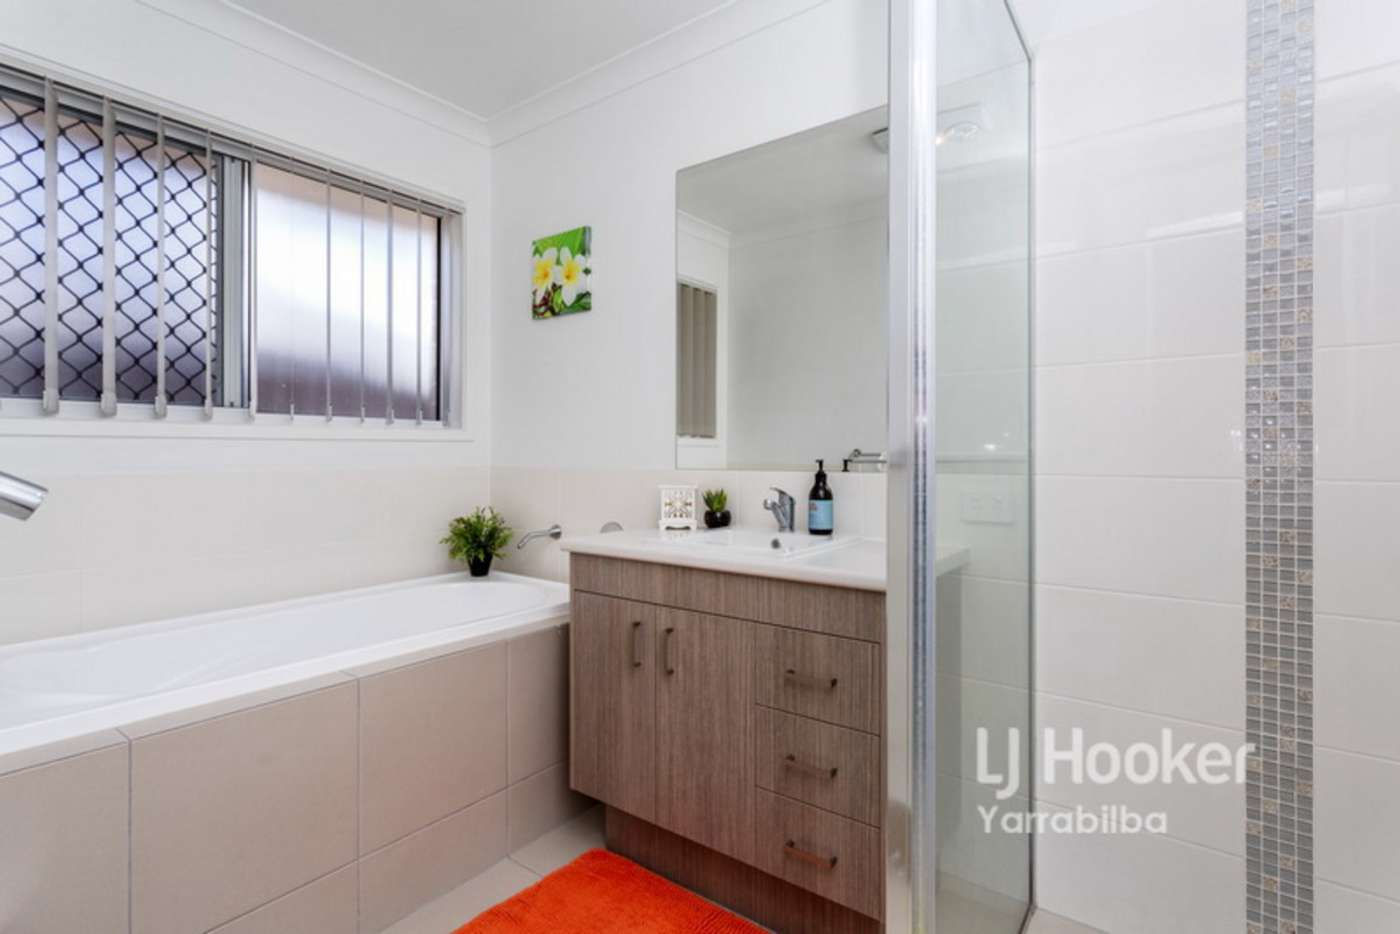 Sixth view of Homely house listing, 22 Tappen Street, Yarrabilba QLD 4207